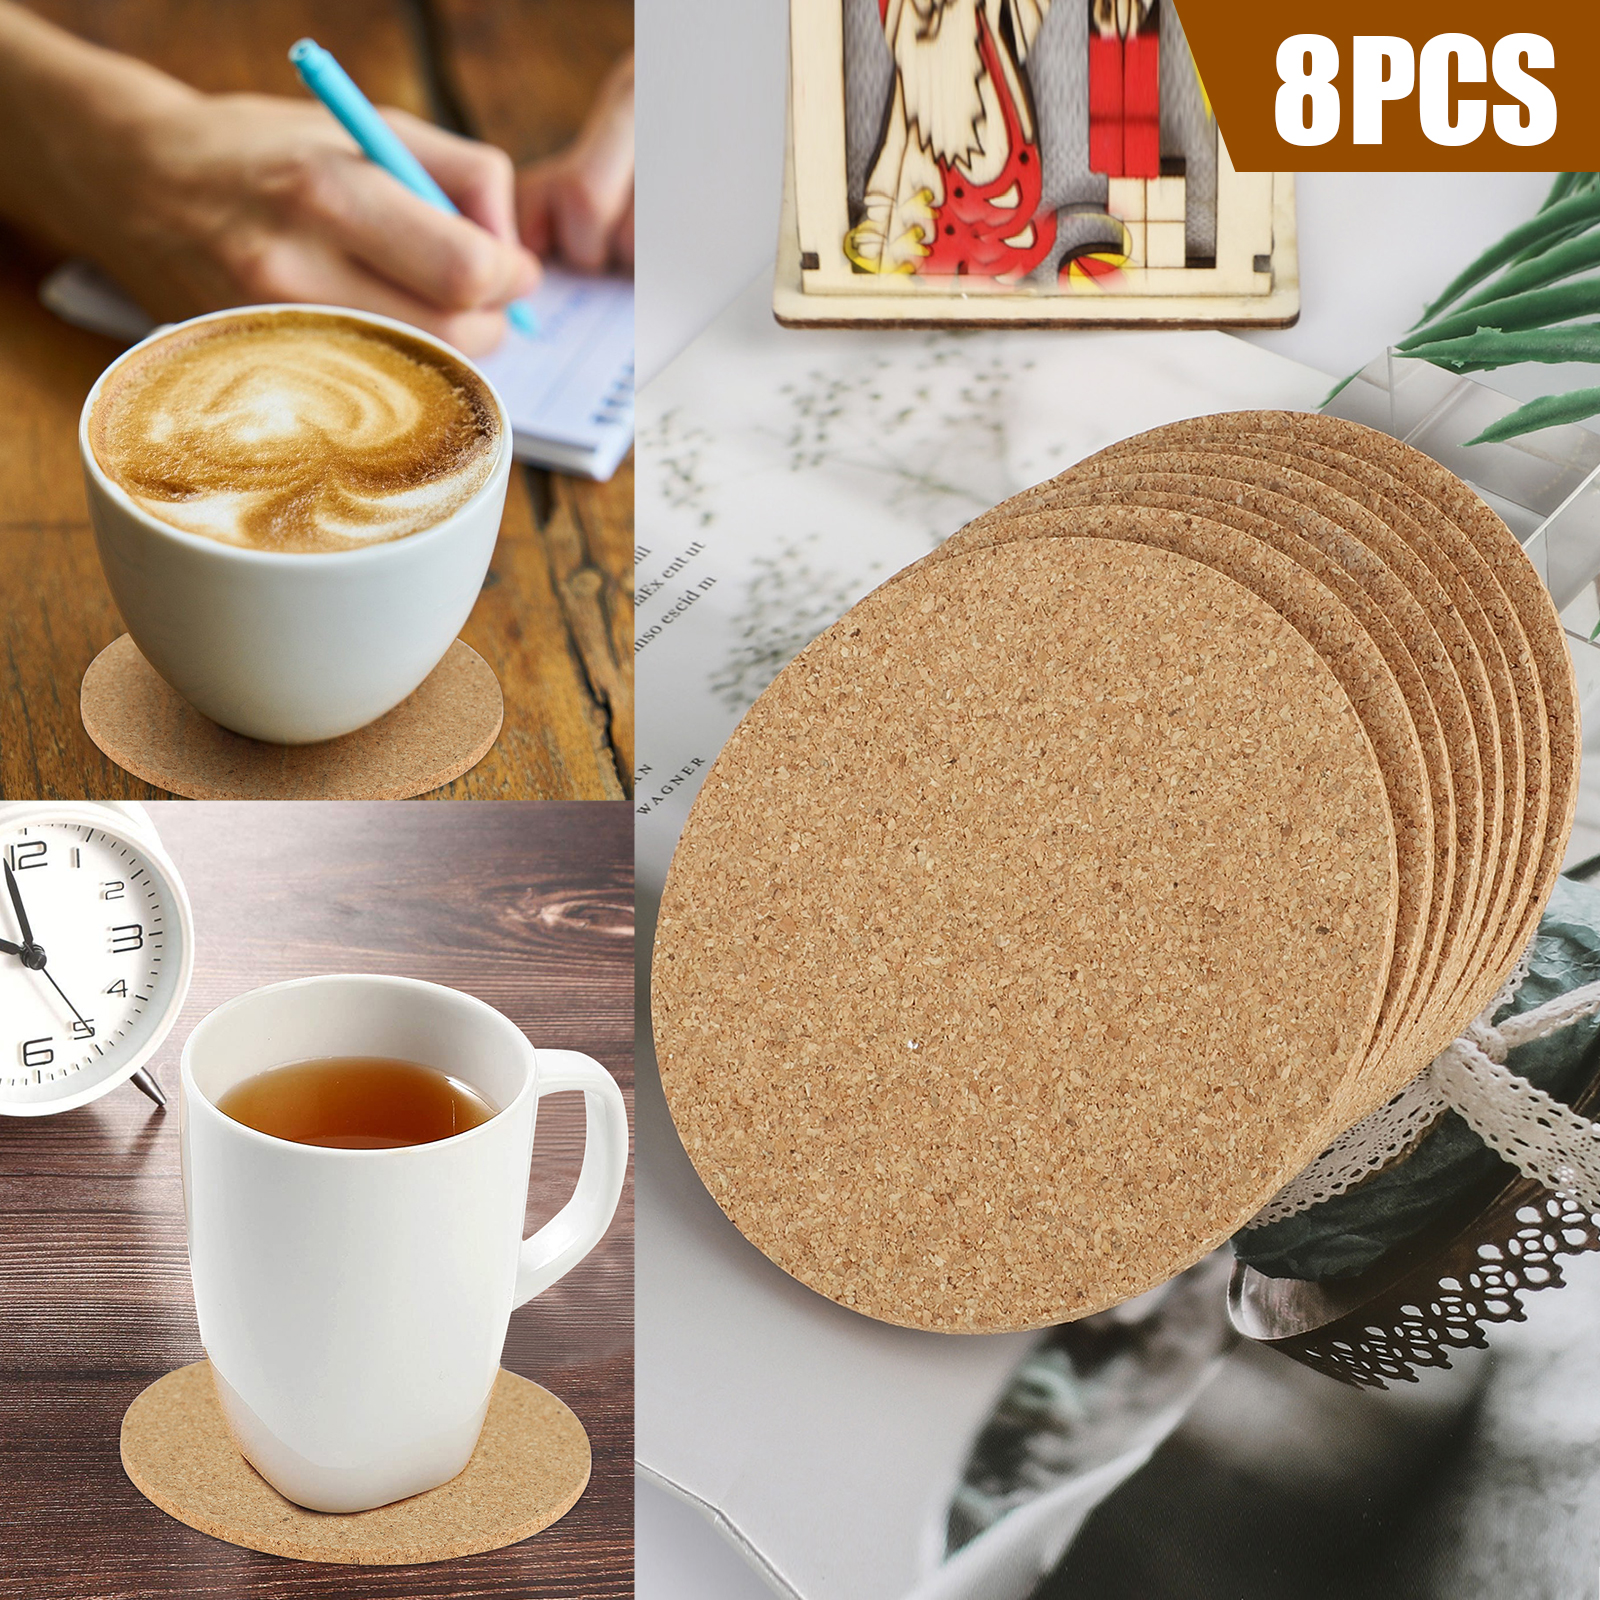 8-16pcs-Cork-Drink-Coasters-Tea-Coffee-Absorbent-Round-Cup-Mat-Table-Decor-Home